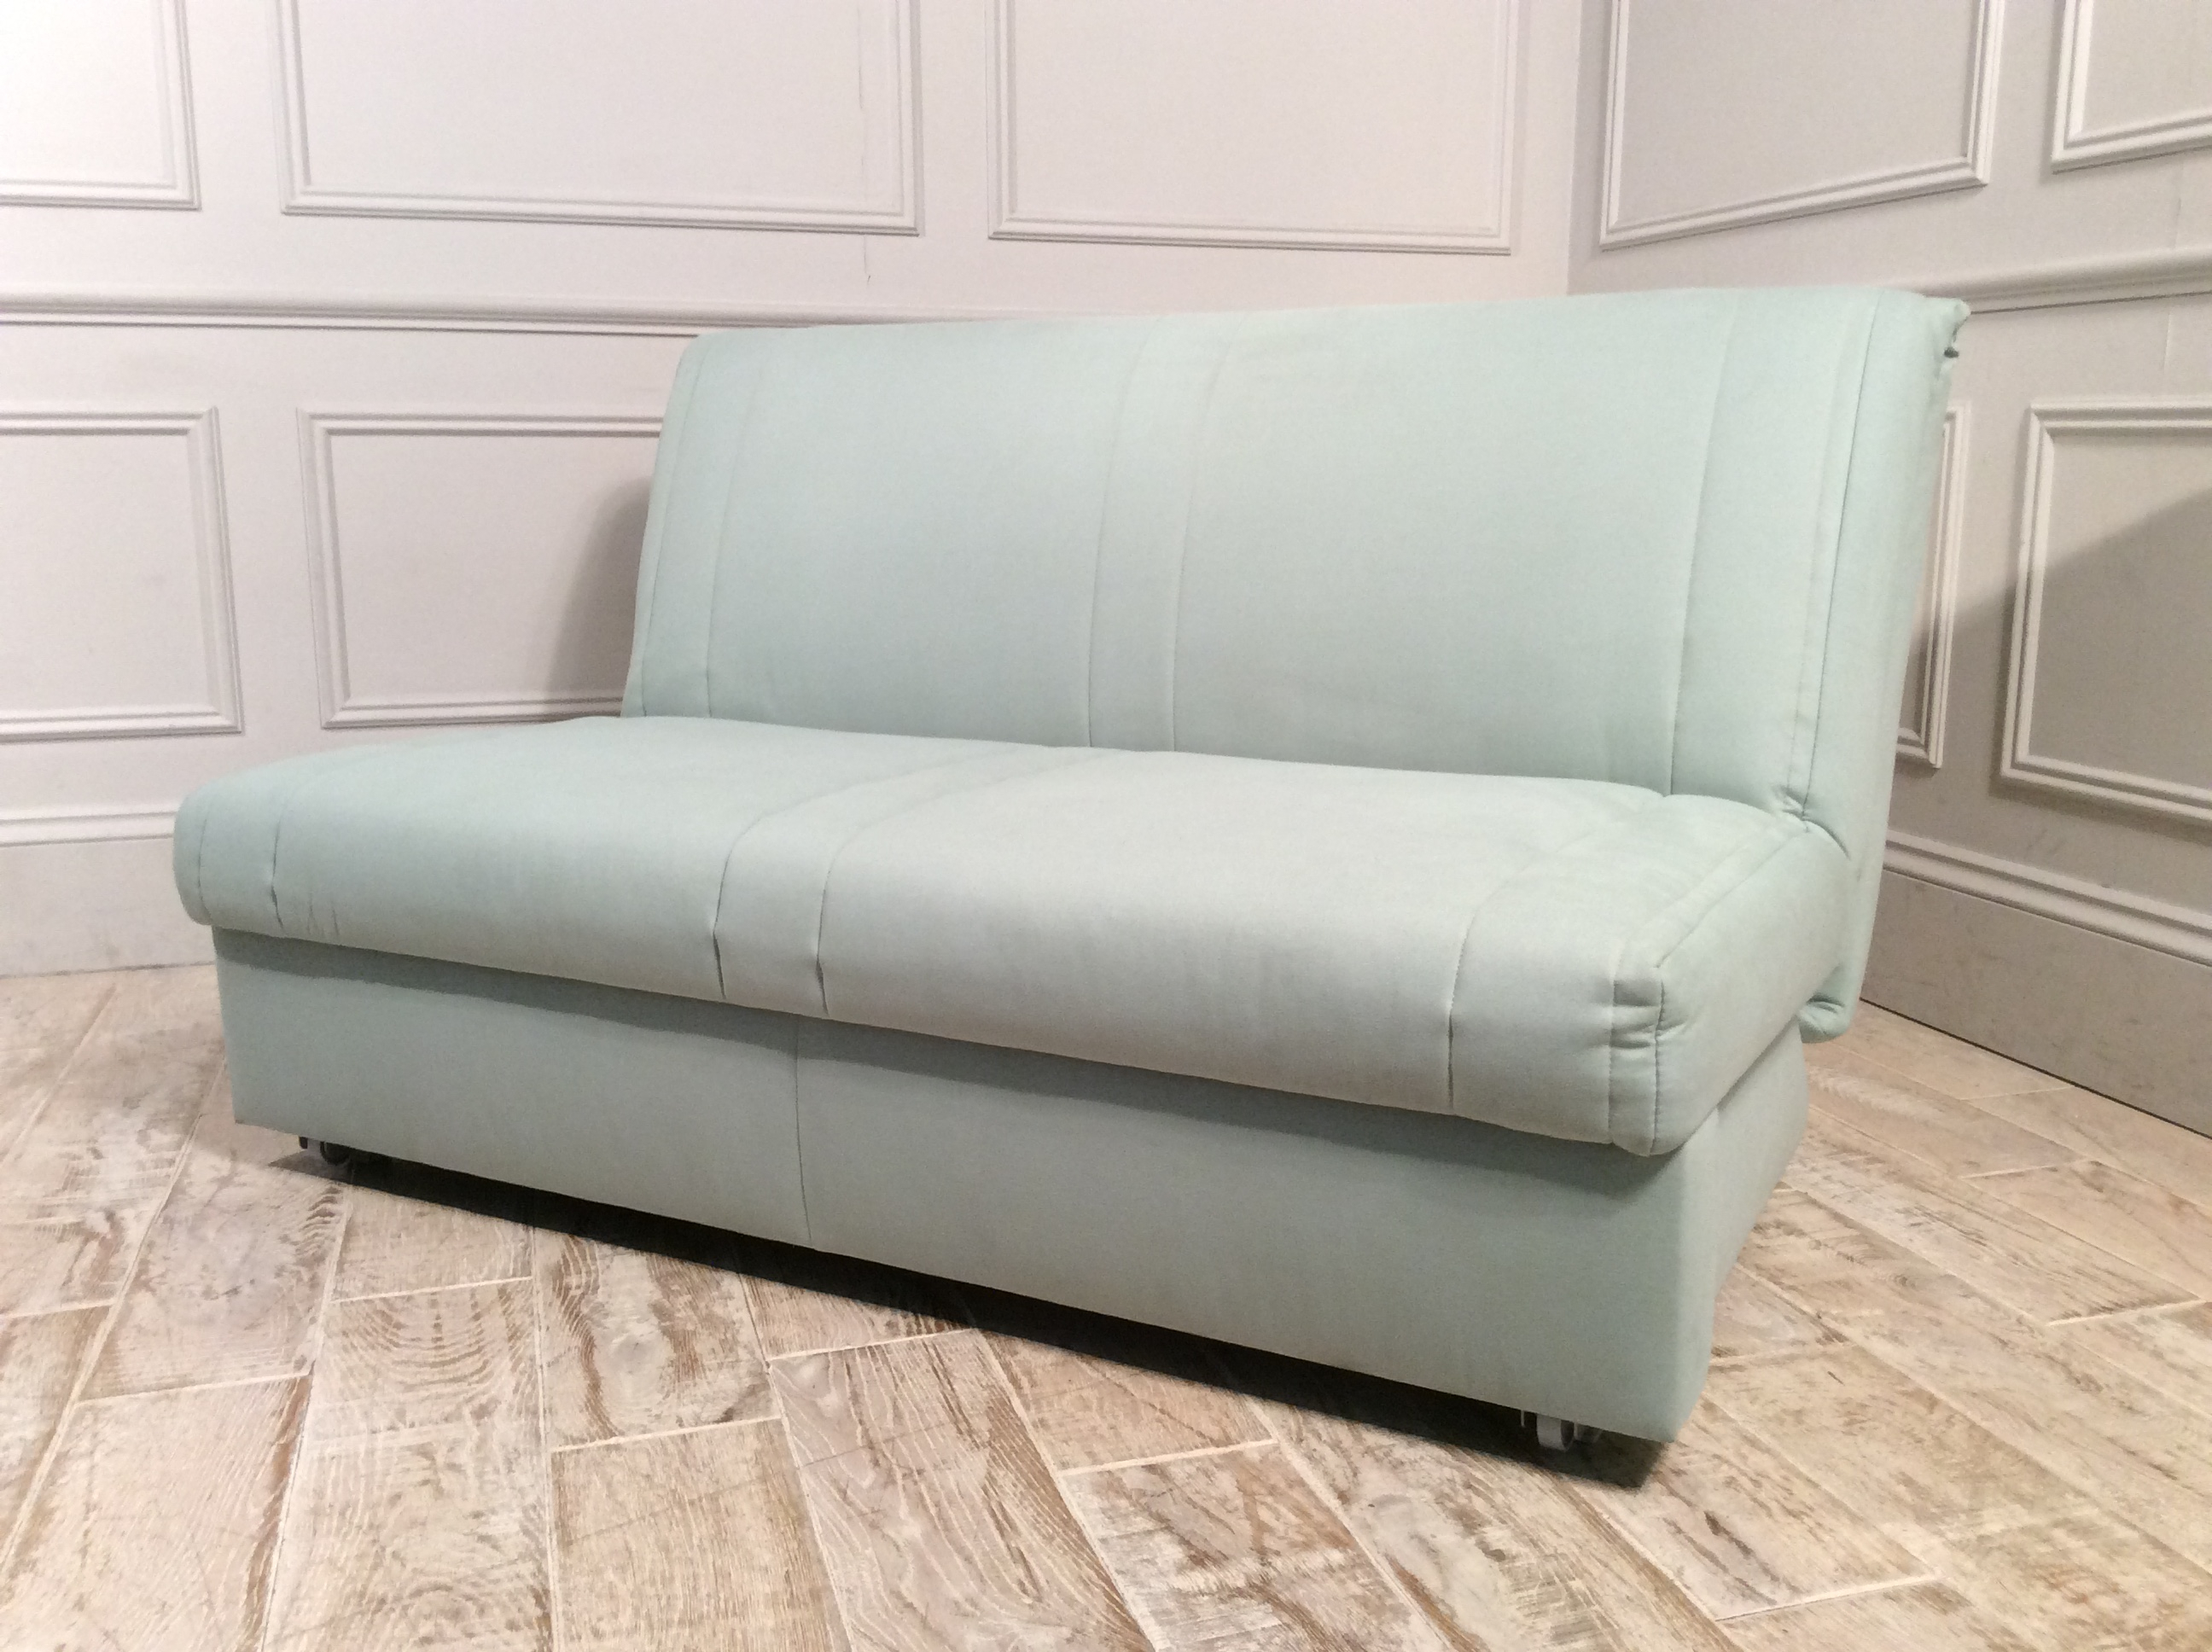 Launceston 3 Seater No Arms Sofa Bed in Mint